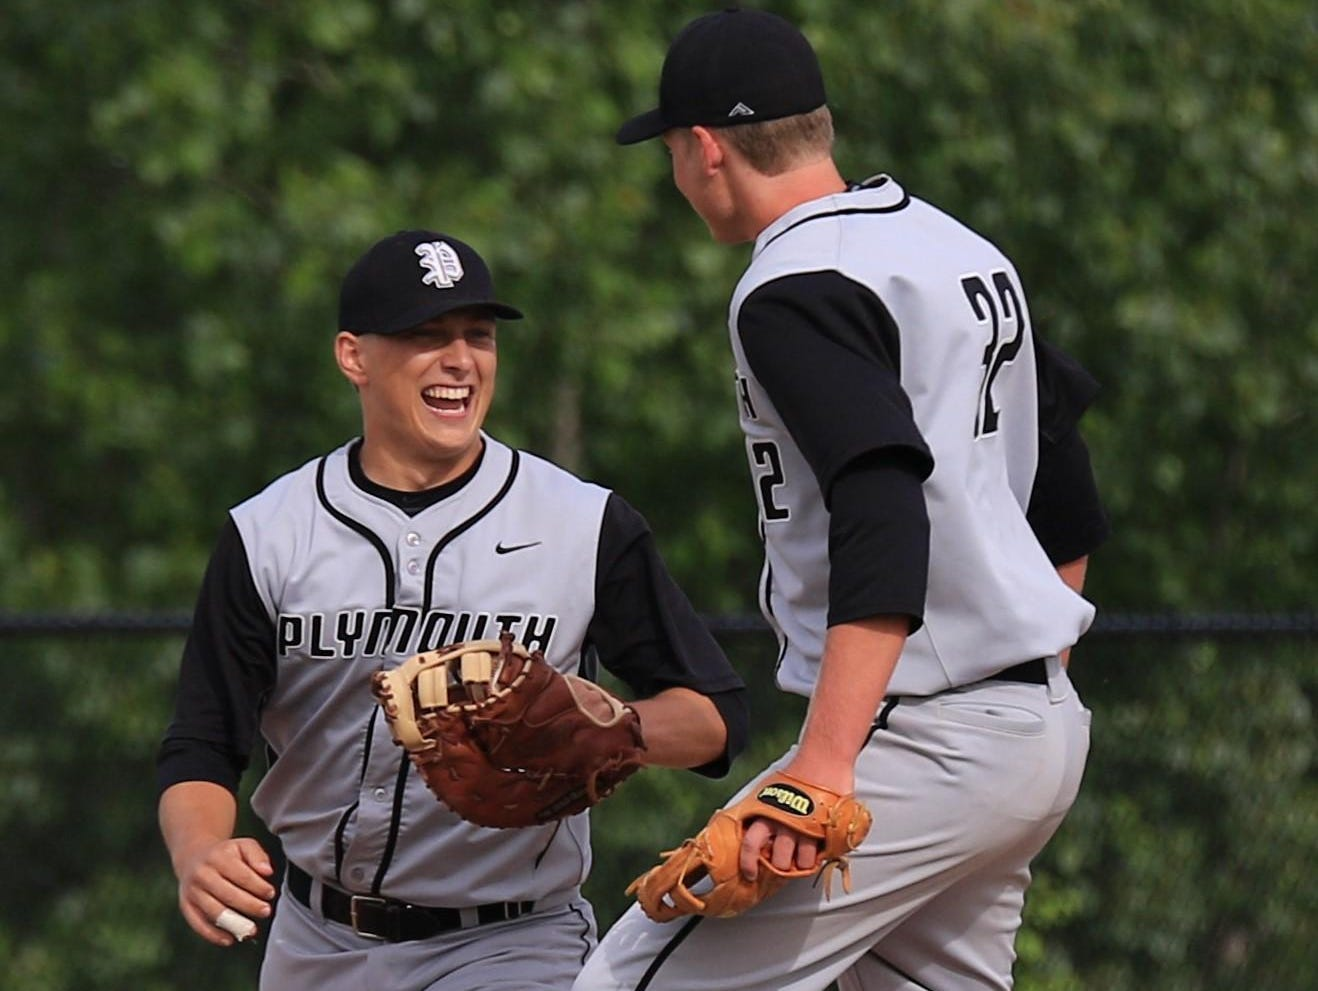 Plymouth seniors Seth Hubbard (left) and Kevin Anthony (No. 32) celebrate after first baseman Hubbard makes the final out in the Wildcats' 2-1 win over Westland John Glenn Monday. The victory gave Plymouth its first baseball district championship.